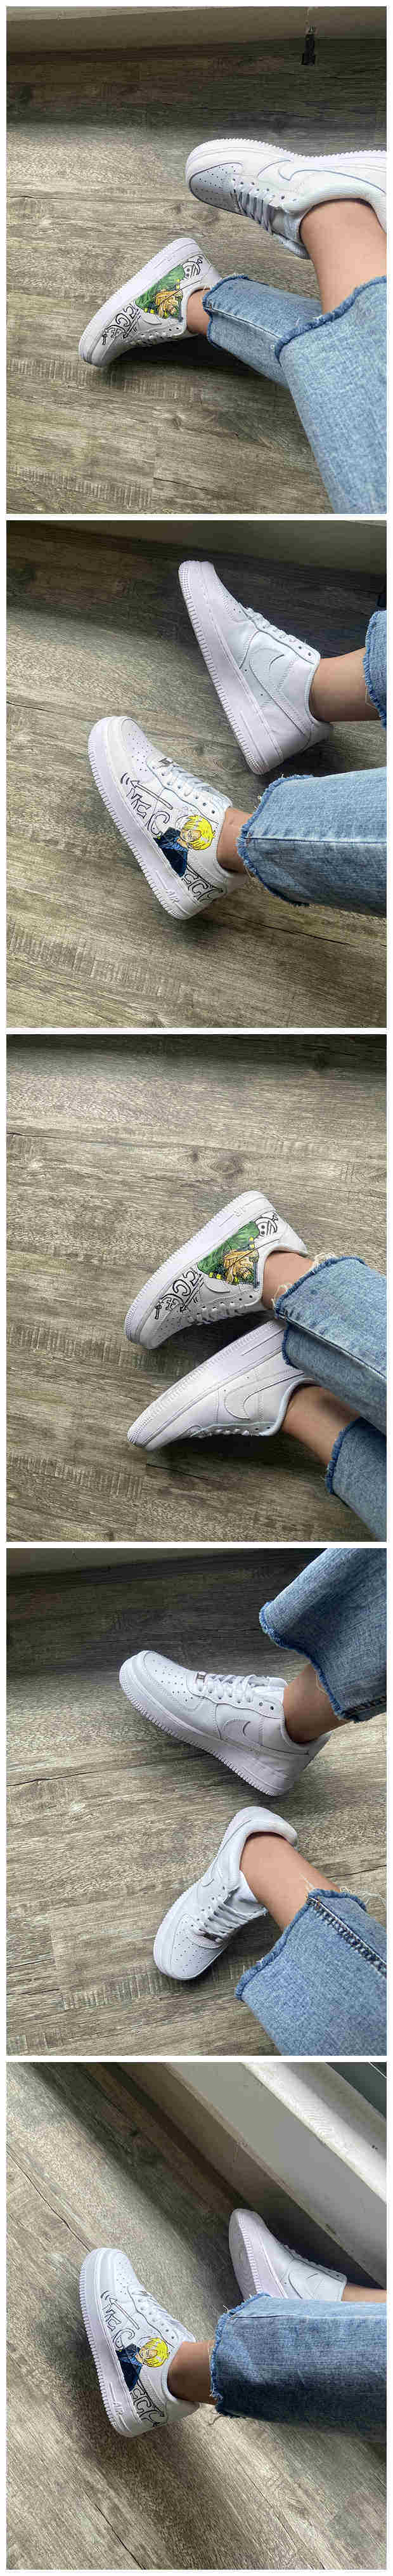 Custom One Piece Shoes For Sanji And Zoro Air Force 1 White Graffiti Hand Painted Sneaker - A002Custom One Piece Shoes For Sanji And Zoro Air Force 1 Graffiti Hand Painted Sneaker - The Zero Custom